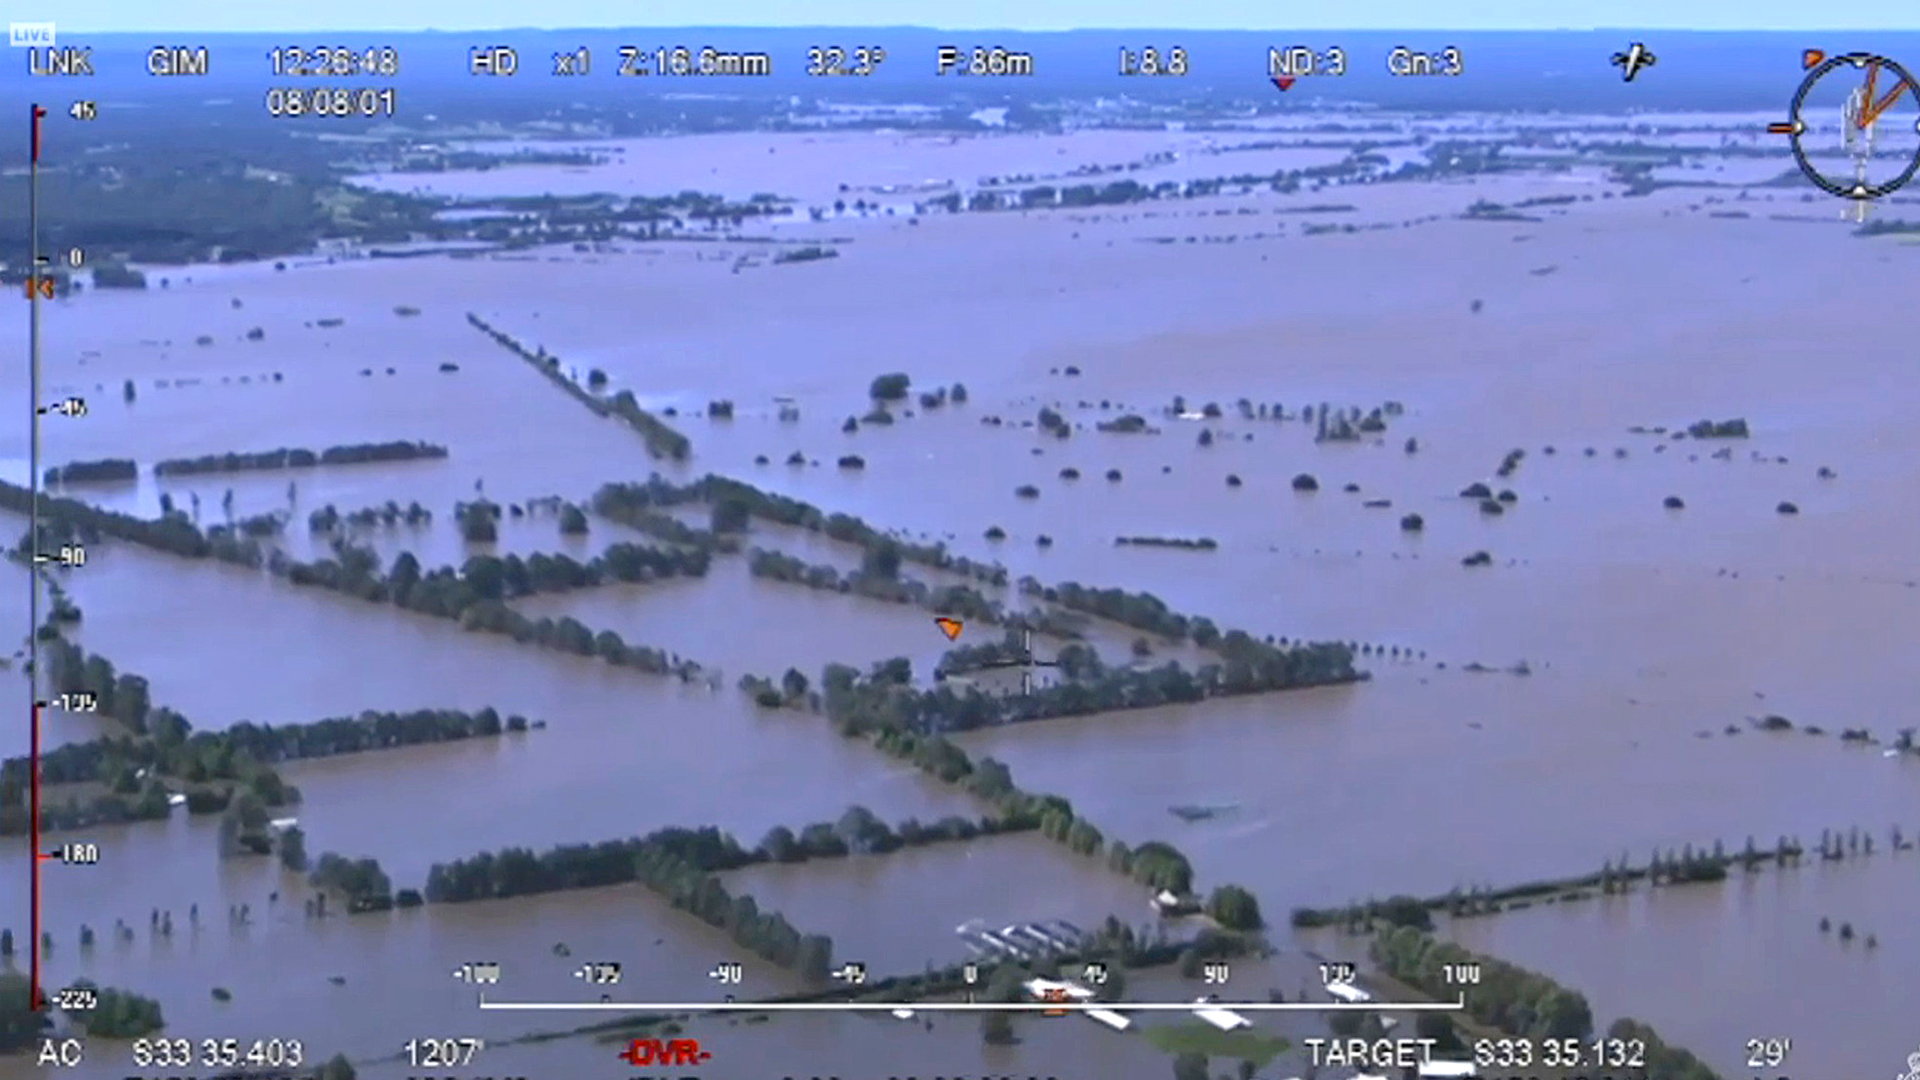 VIDEO: Aerial Footage Shows Aftermath Of Devastating Floods In Australia's NSW